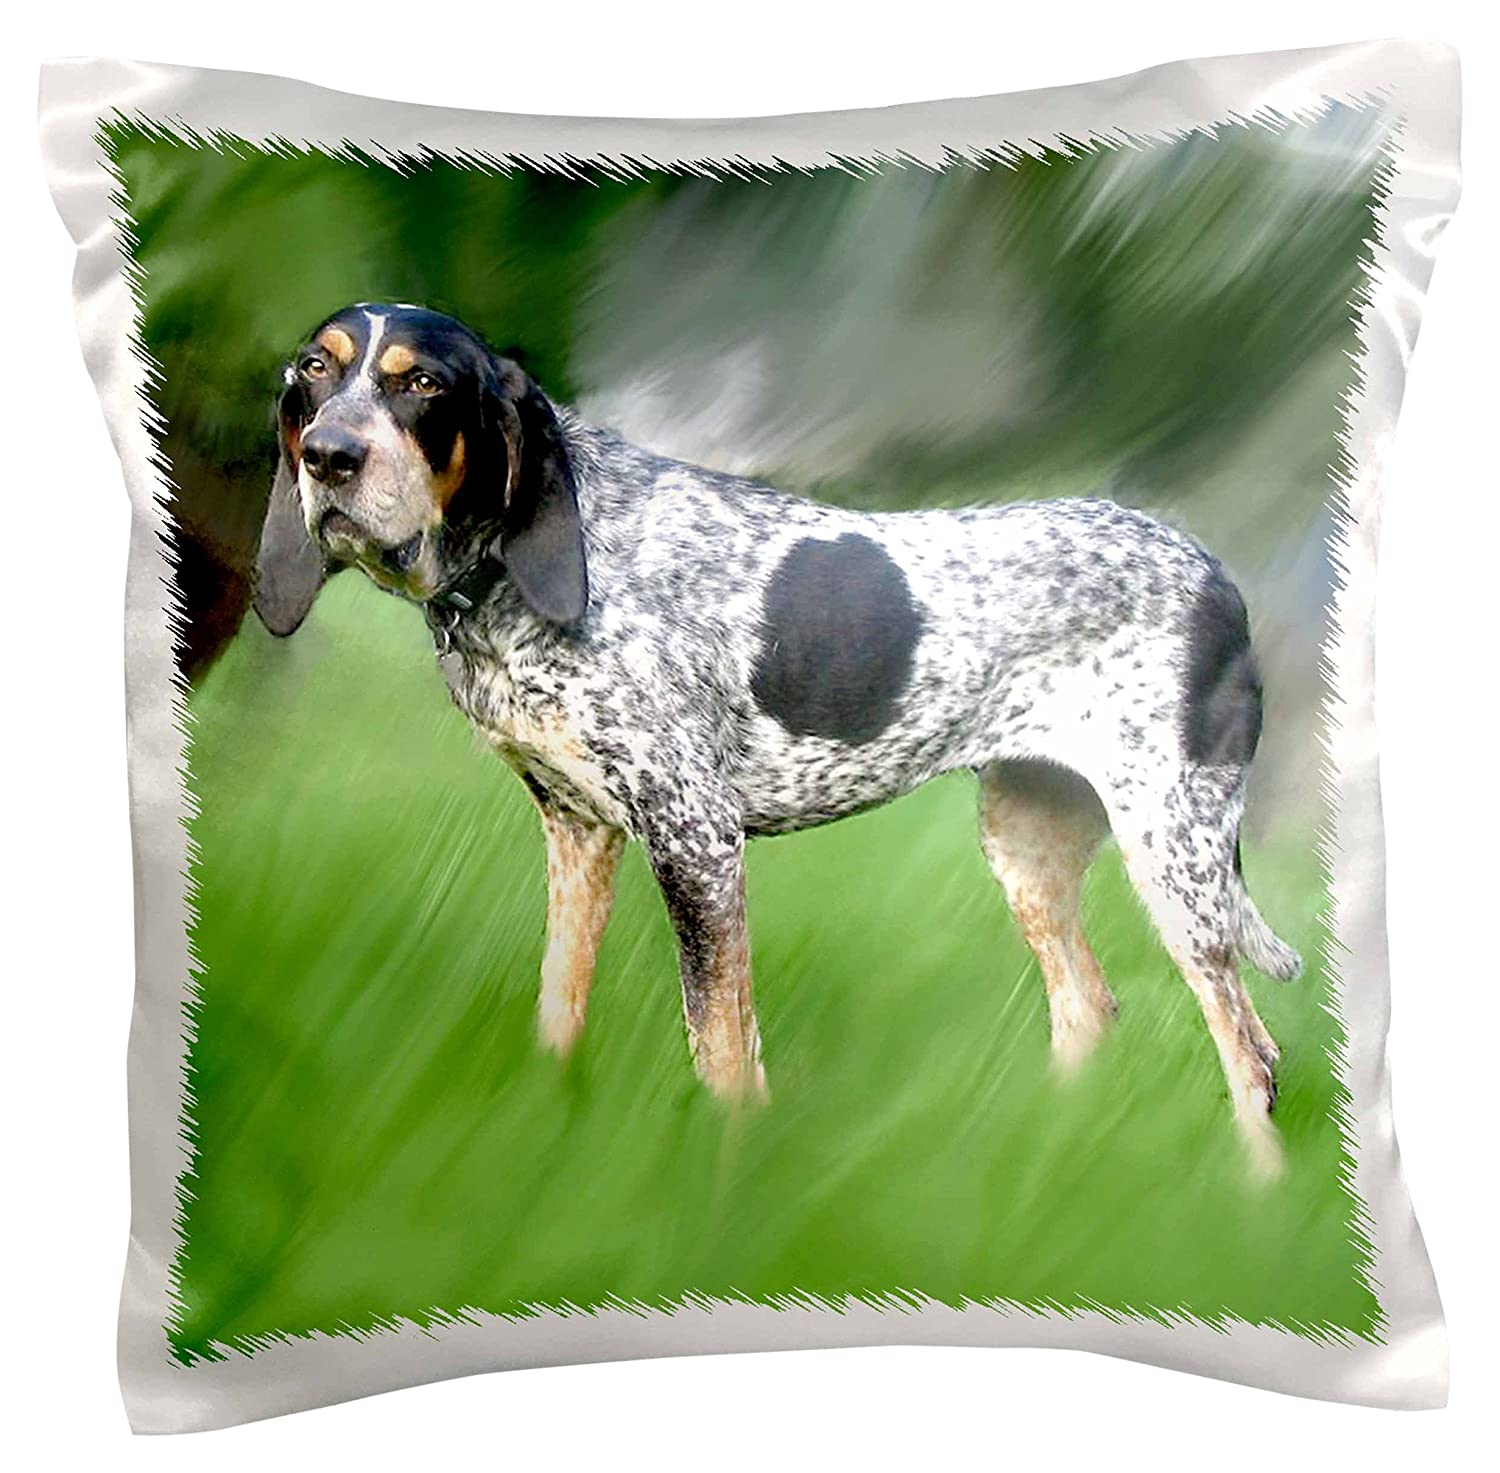 16 by 16 3dRose pc/_4417/_1 Blue Tick Coonhound-Pillow Case